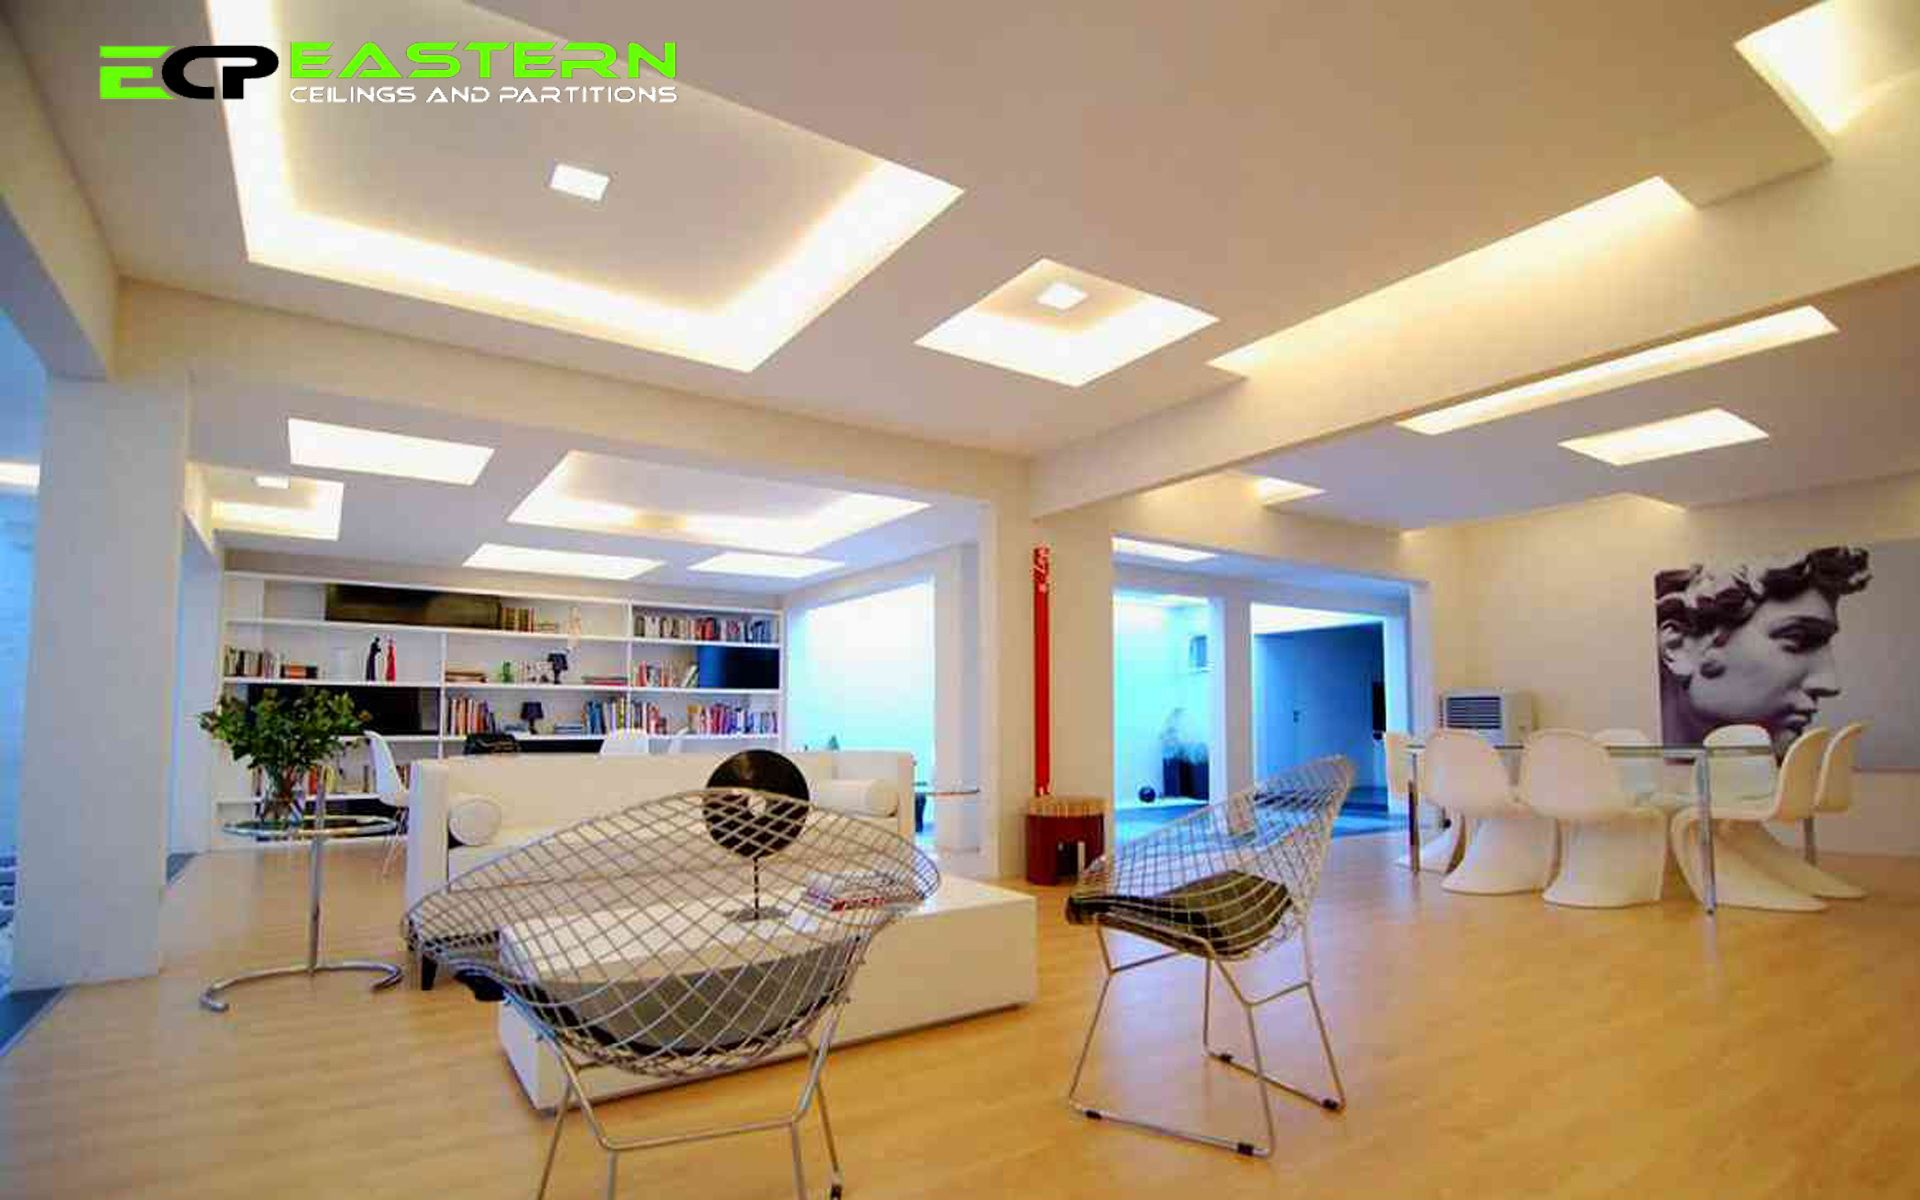 Ceiling Design For Kitchen Deluxe Living Room Ceiling Design For Home Pop Ceiling Designs